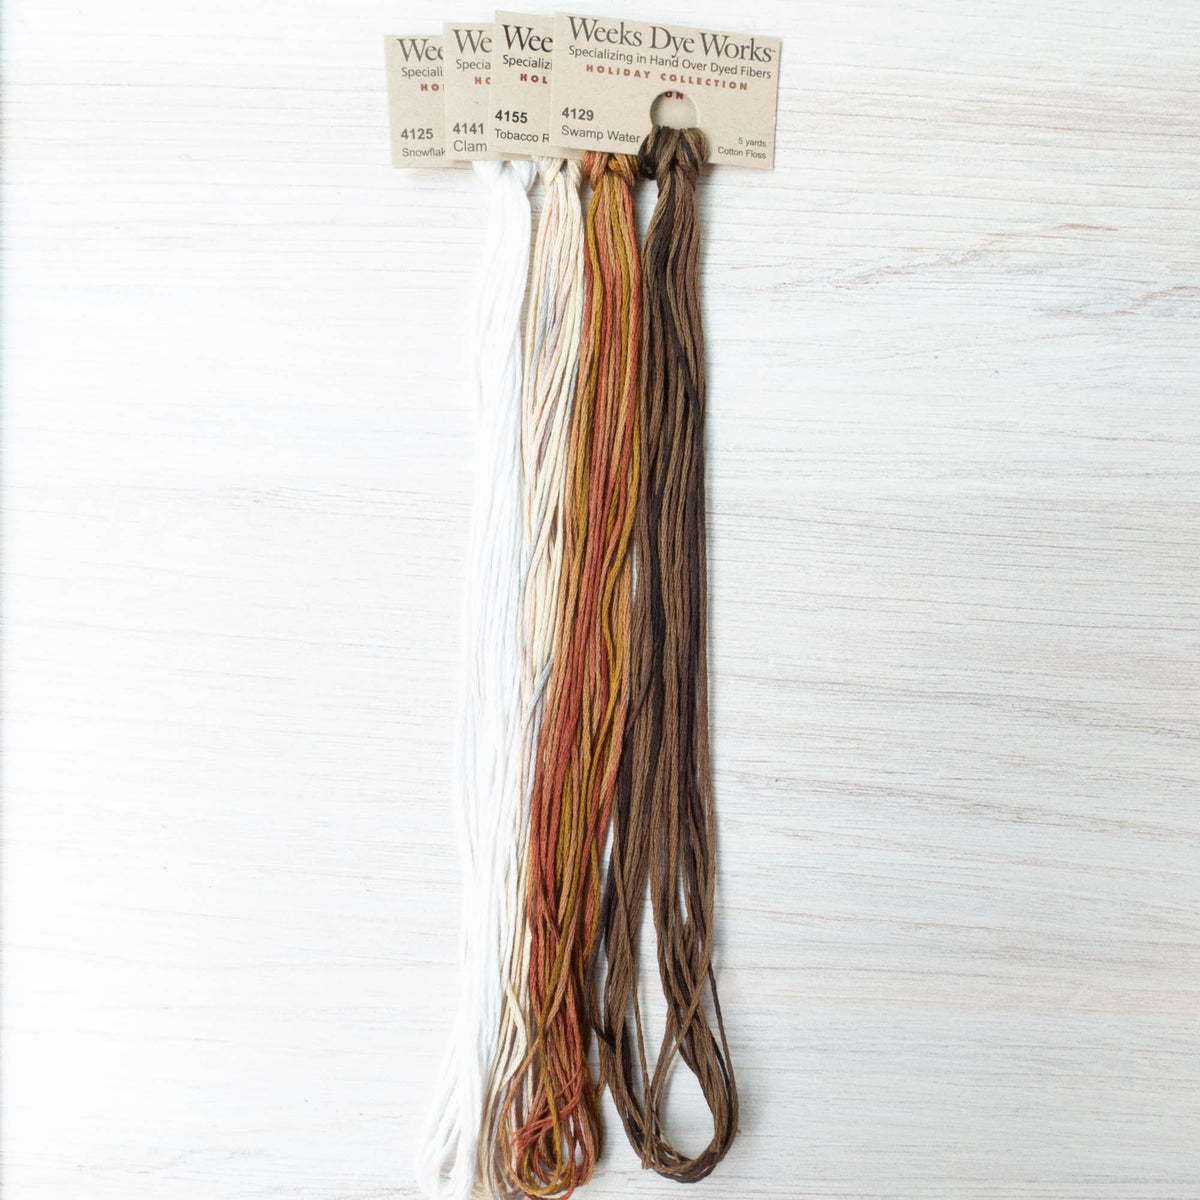 Weeks Dye Works Embroidery Floss Neutrals Collection (4 skeins)